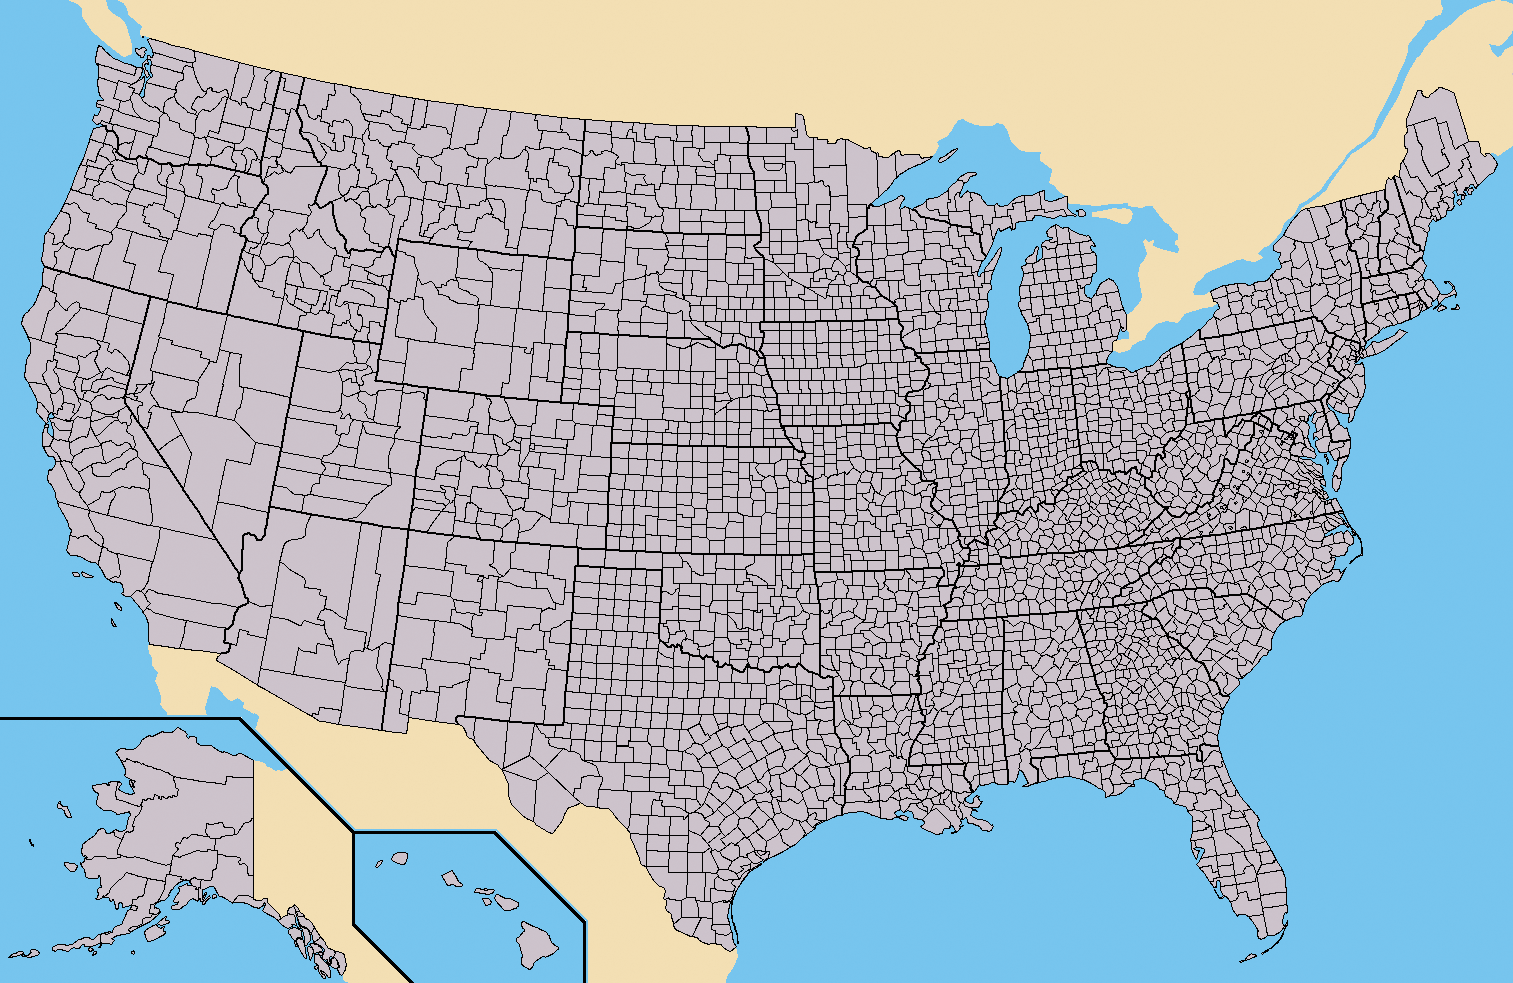 Image Map Of USA With County Outlinespng Implausable - Alternate history us map